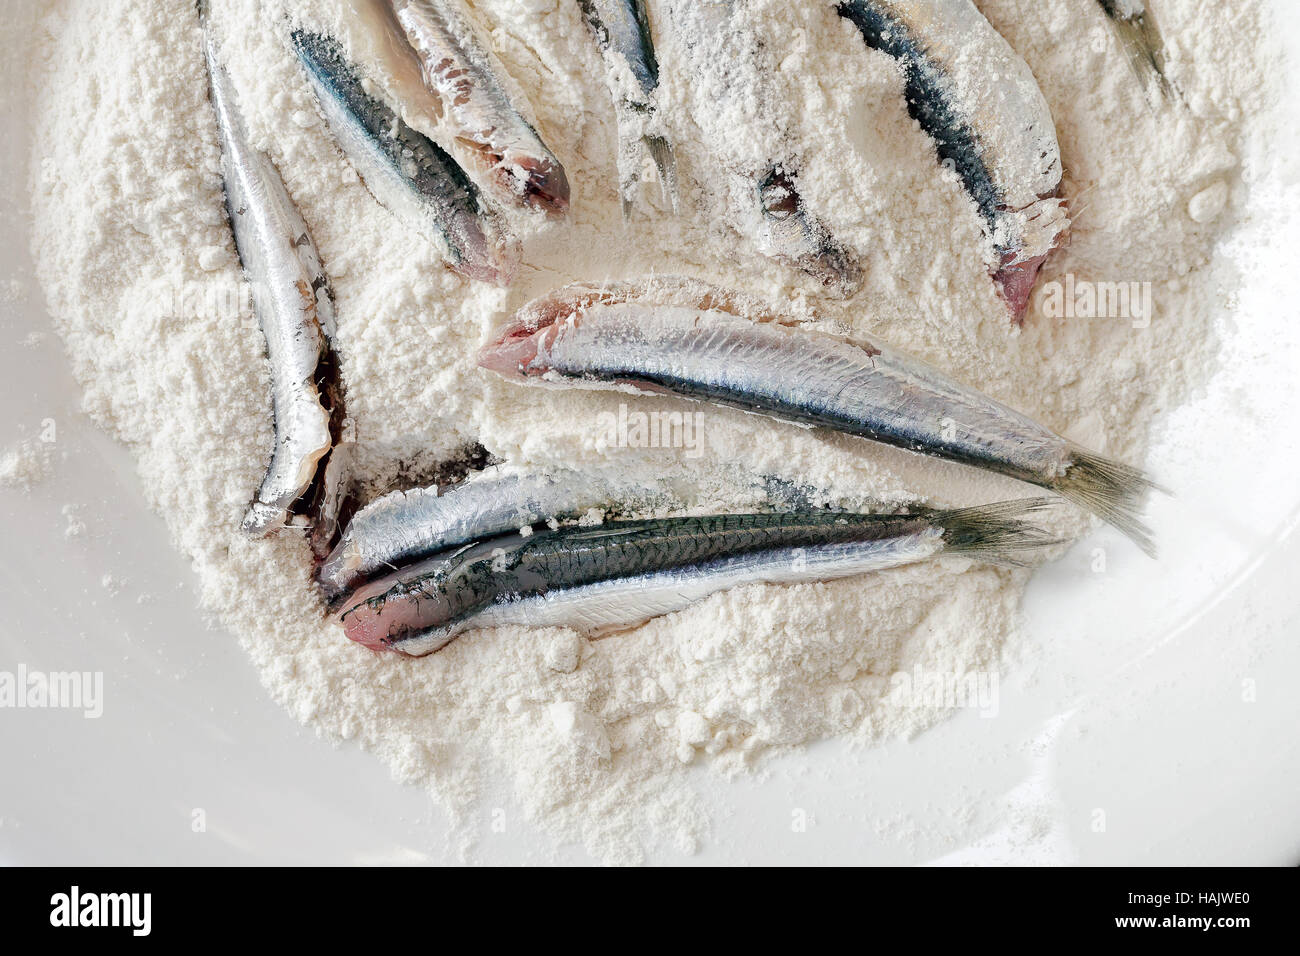 Breaded anchovies, clean and ready to be cooked. Anchovies in the dish filled with white flour. To fry in oil. - Stock Image